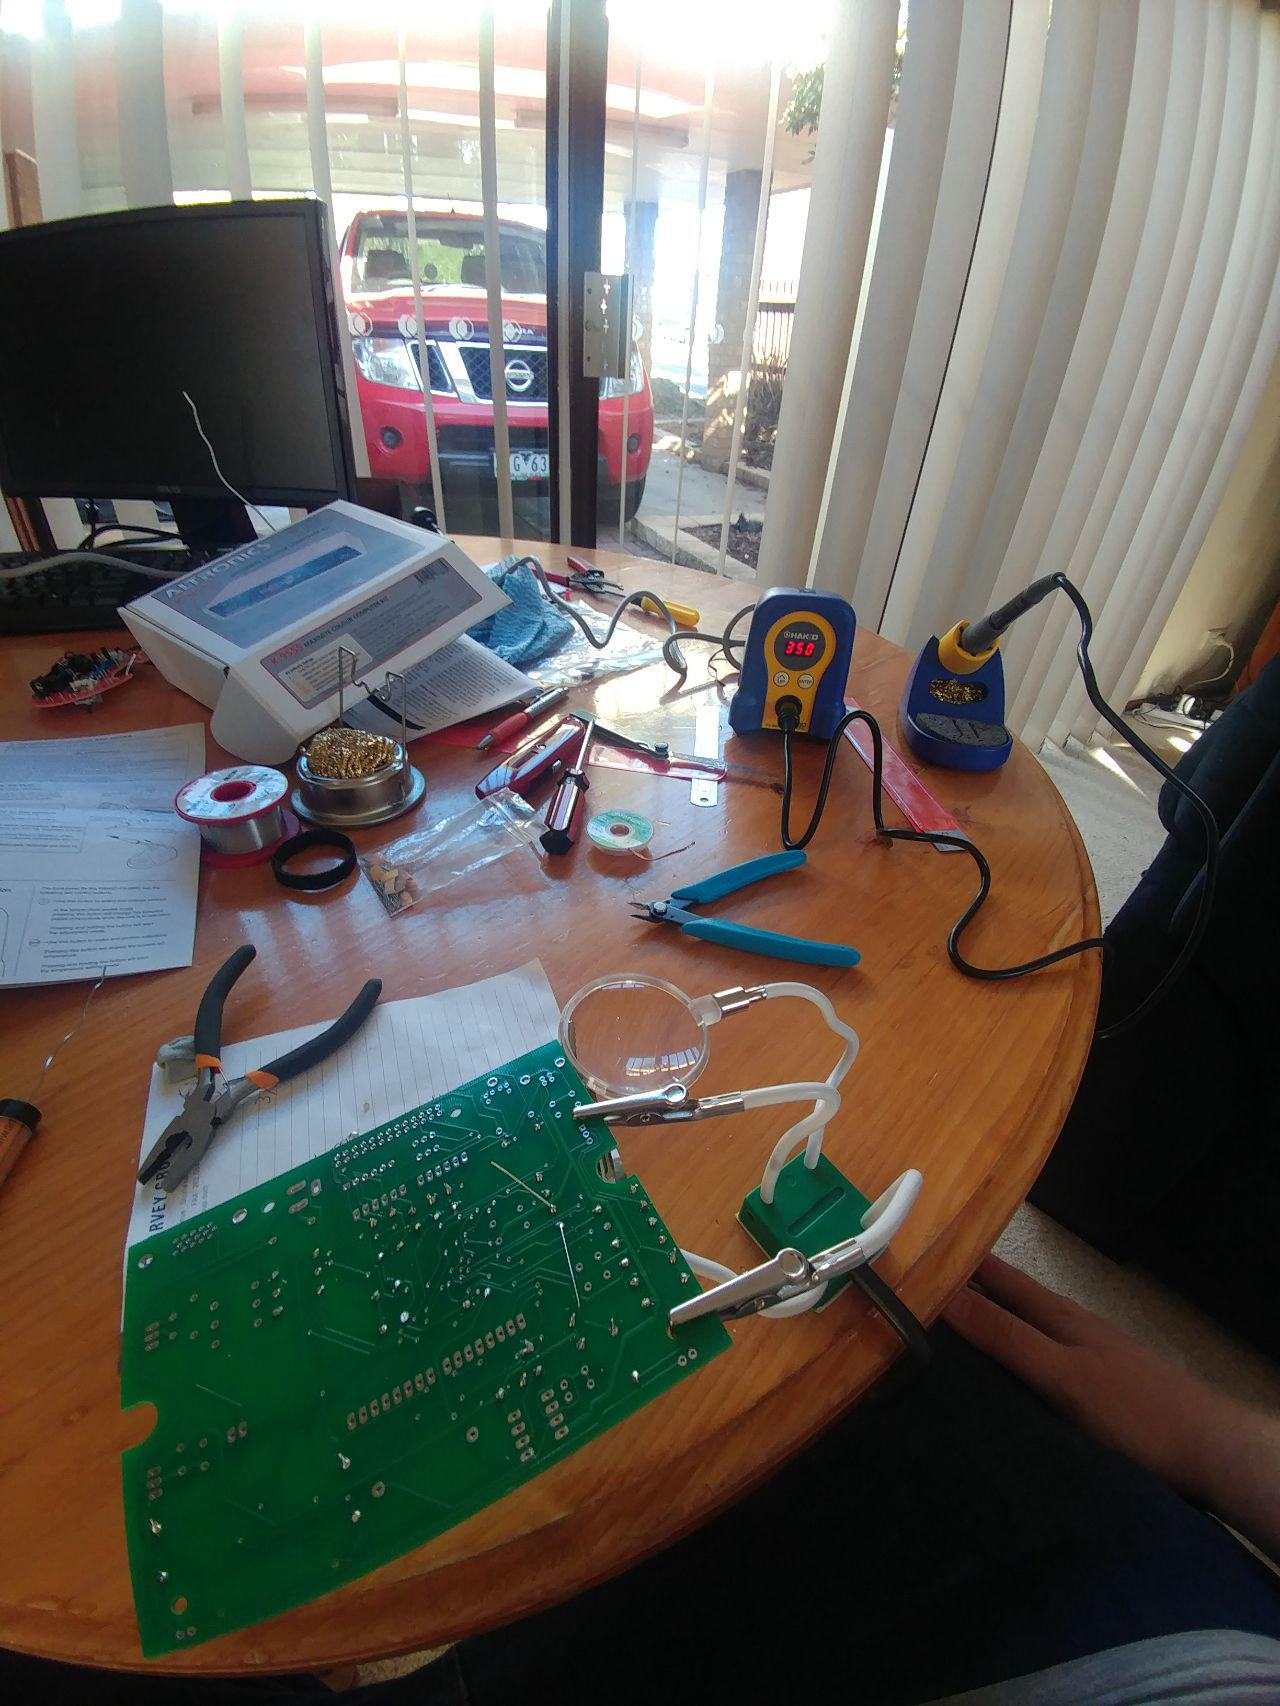 Weekend two of the build with the Hakko FX-888D in the picture